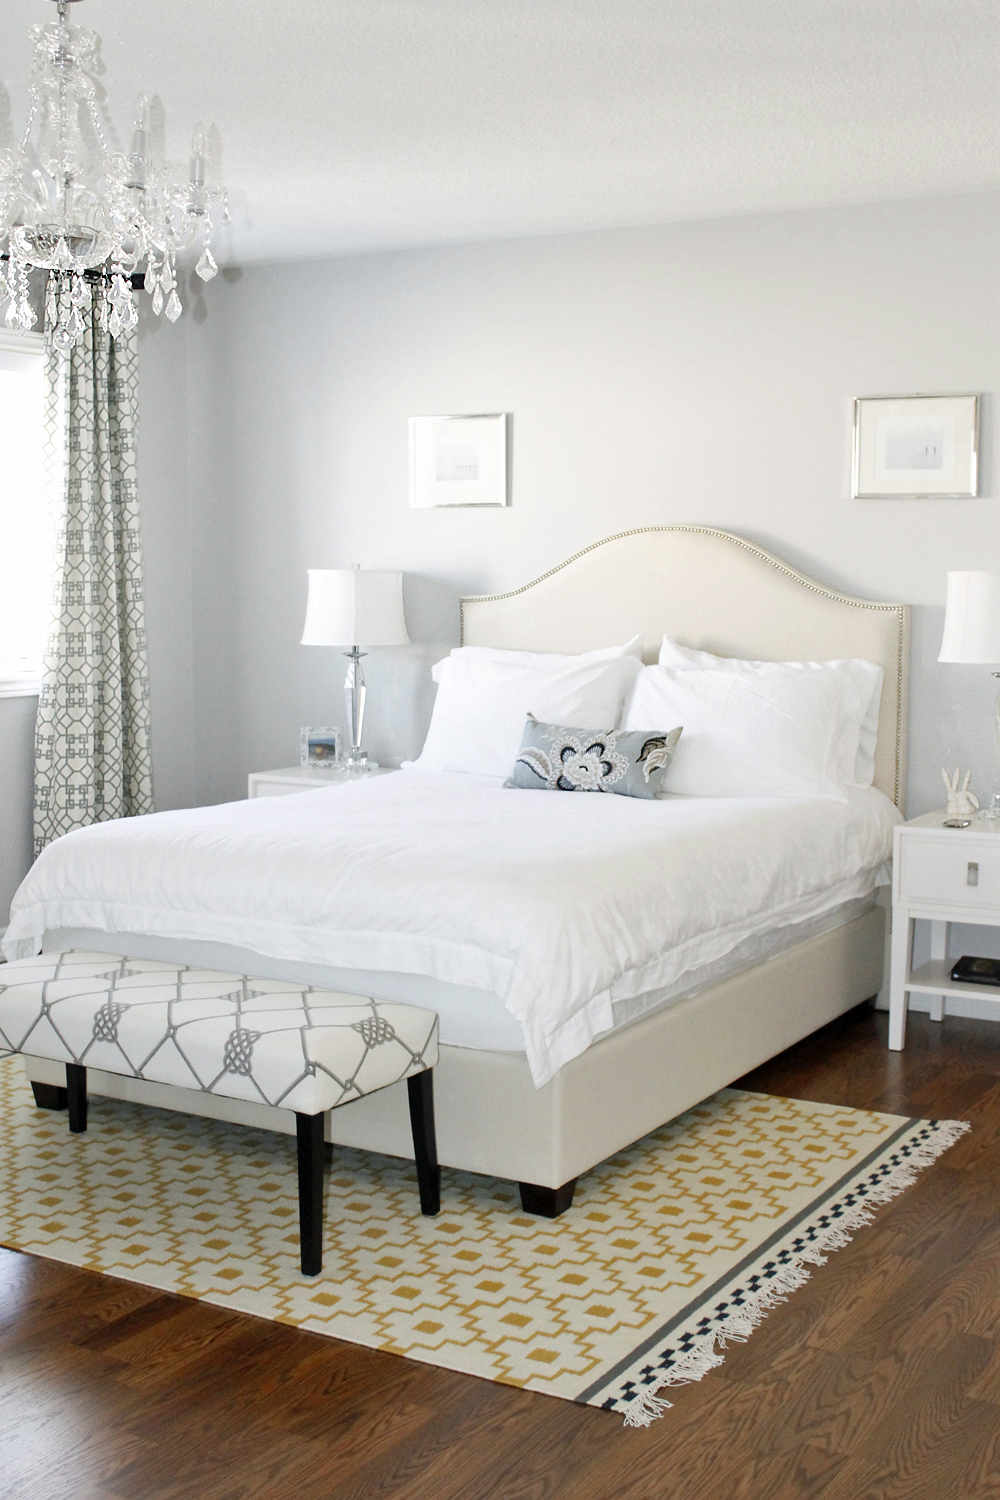 So canadian eh am dolce vita markova design for Rug in bedroom